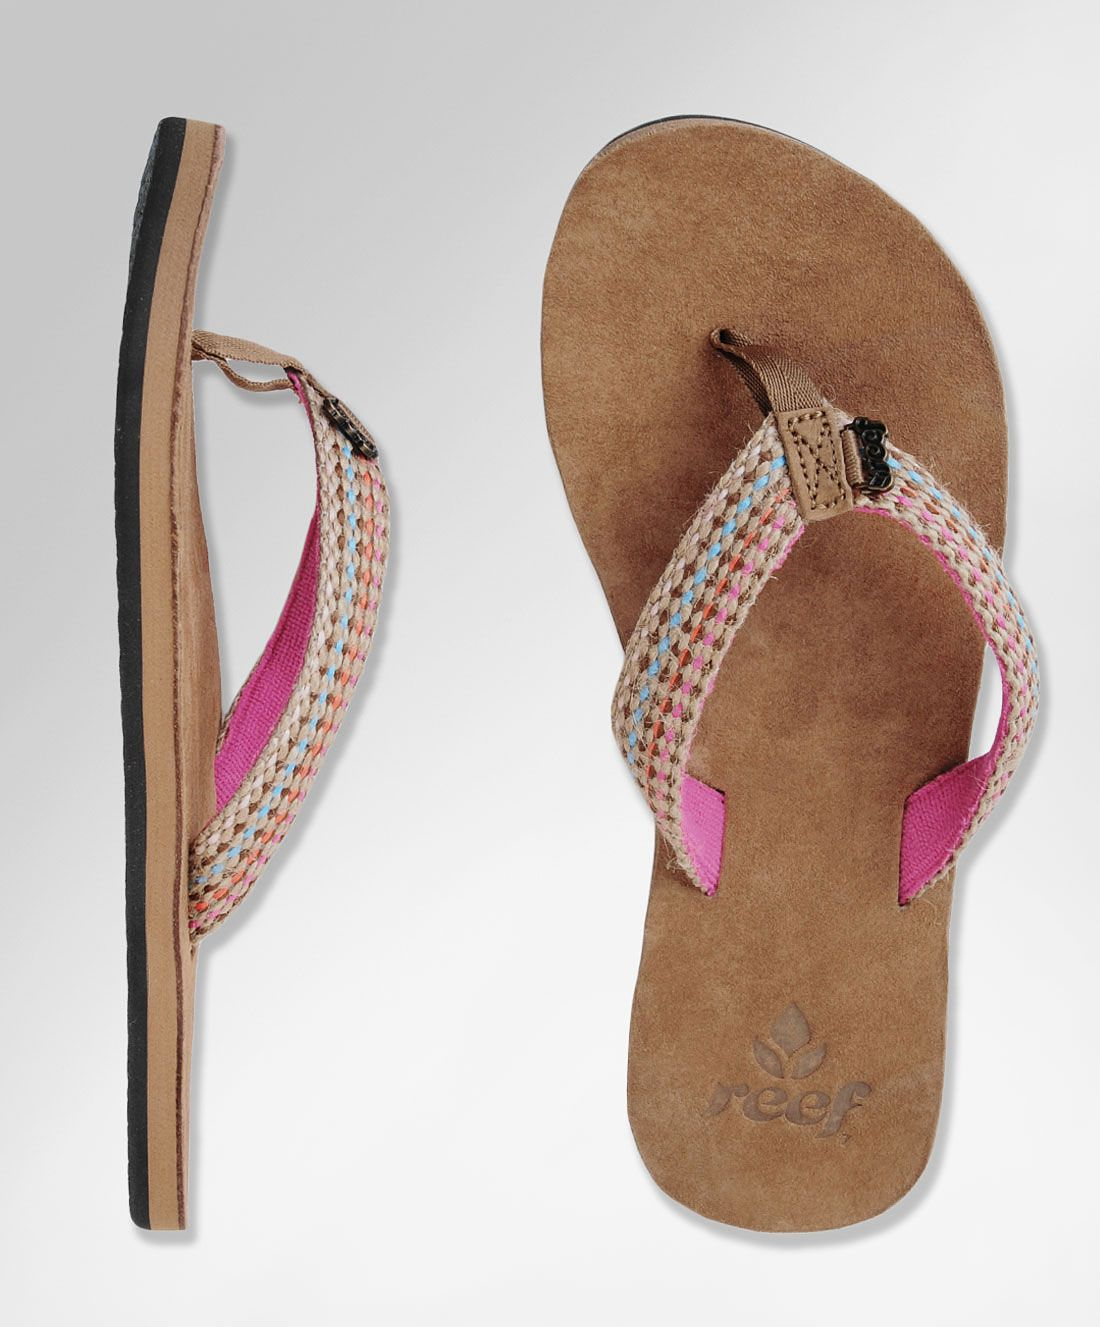 604faa912ba6 Reef Gypsylove sandals